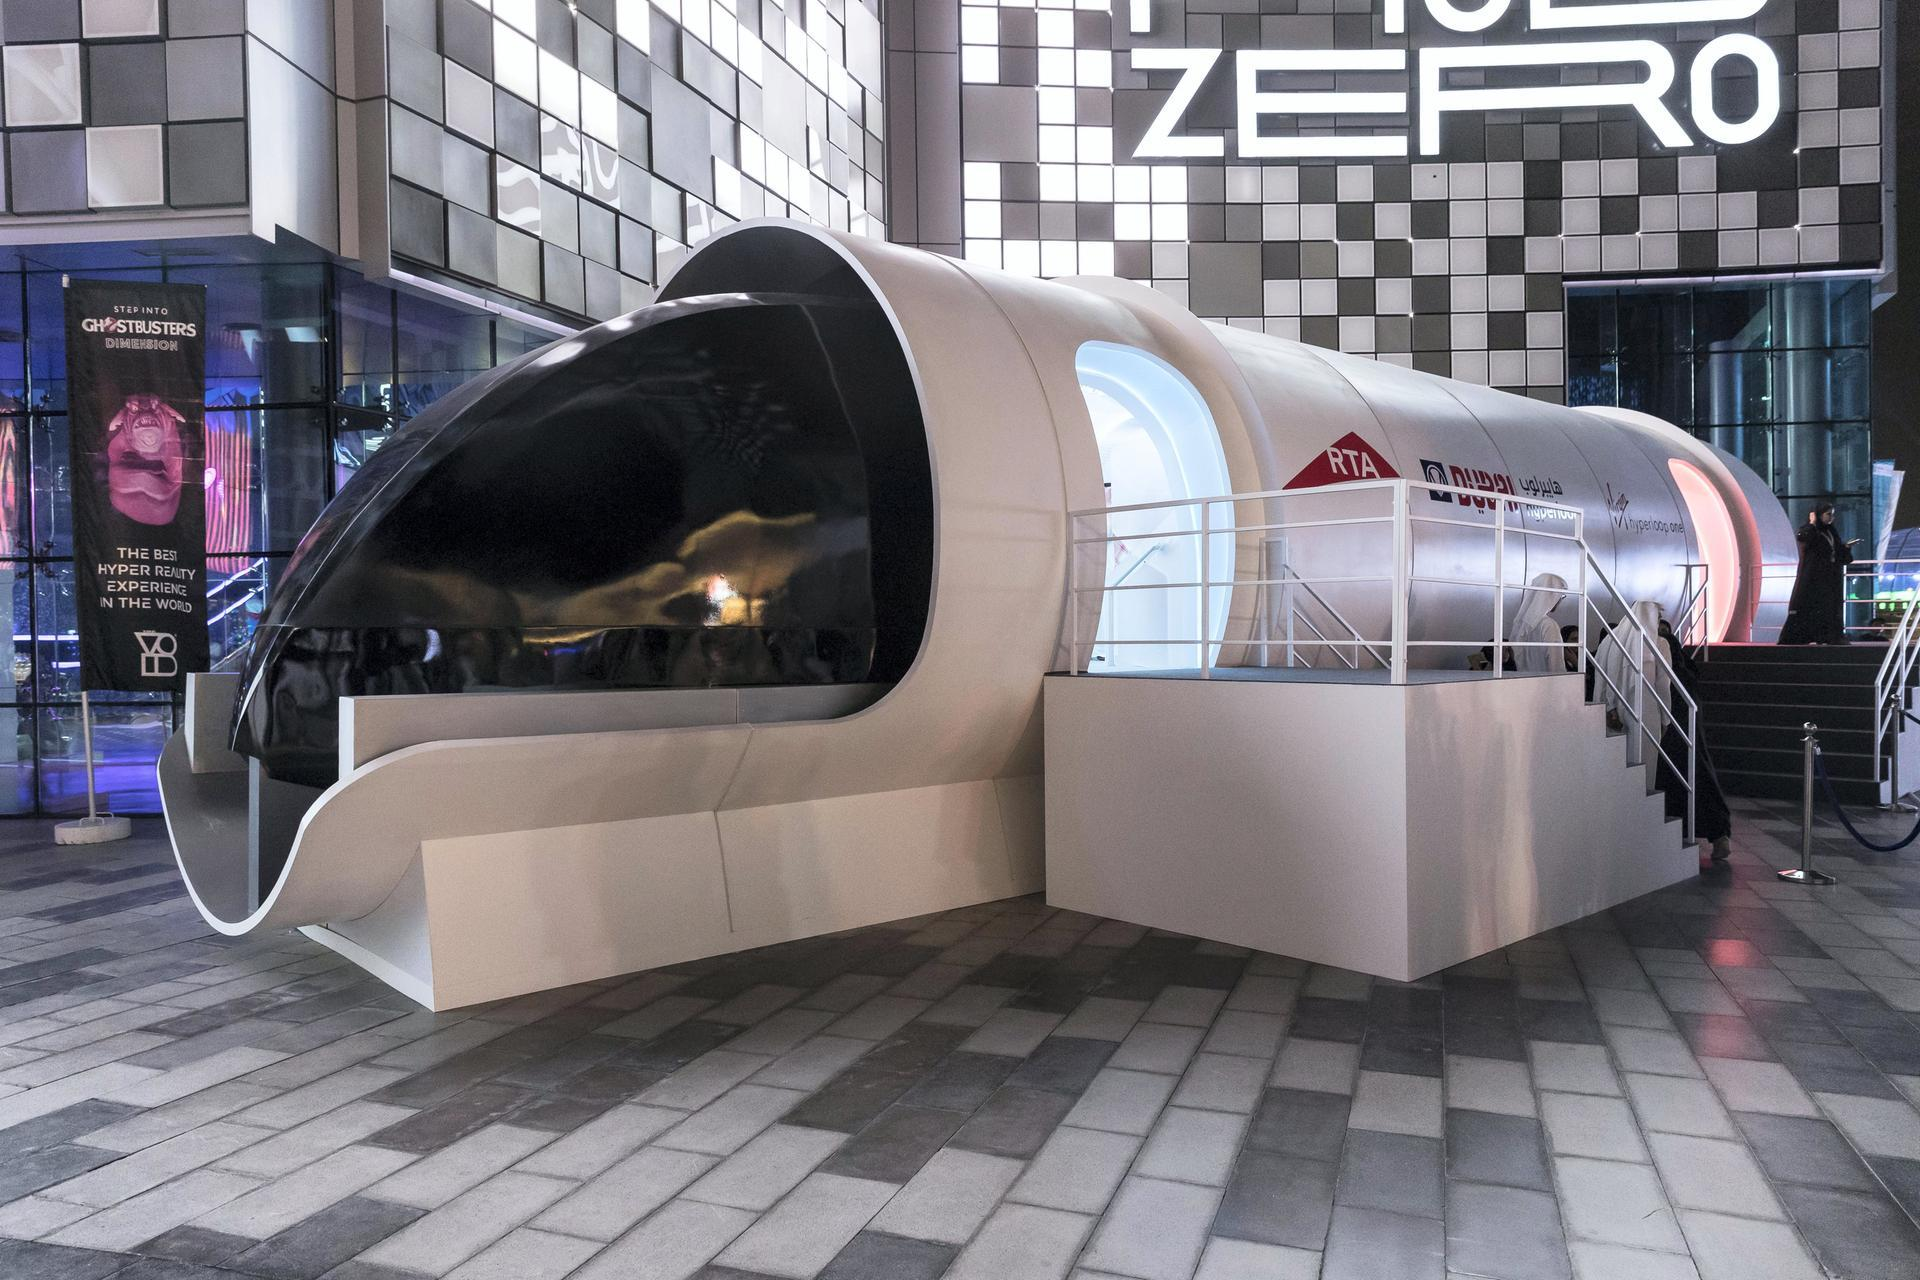 virgin-hyperloop-one-passenger-pod-prototype